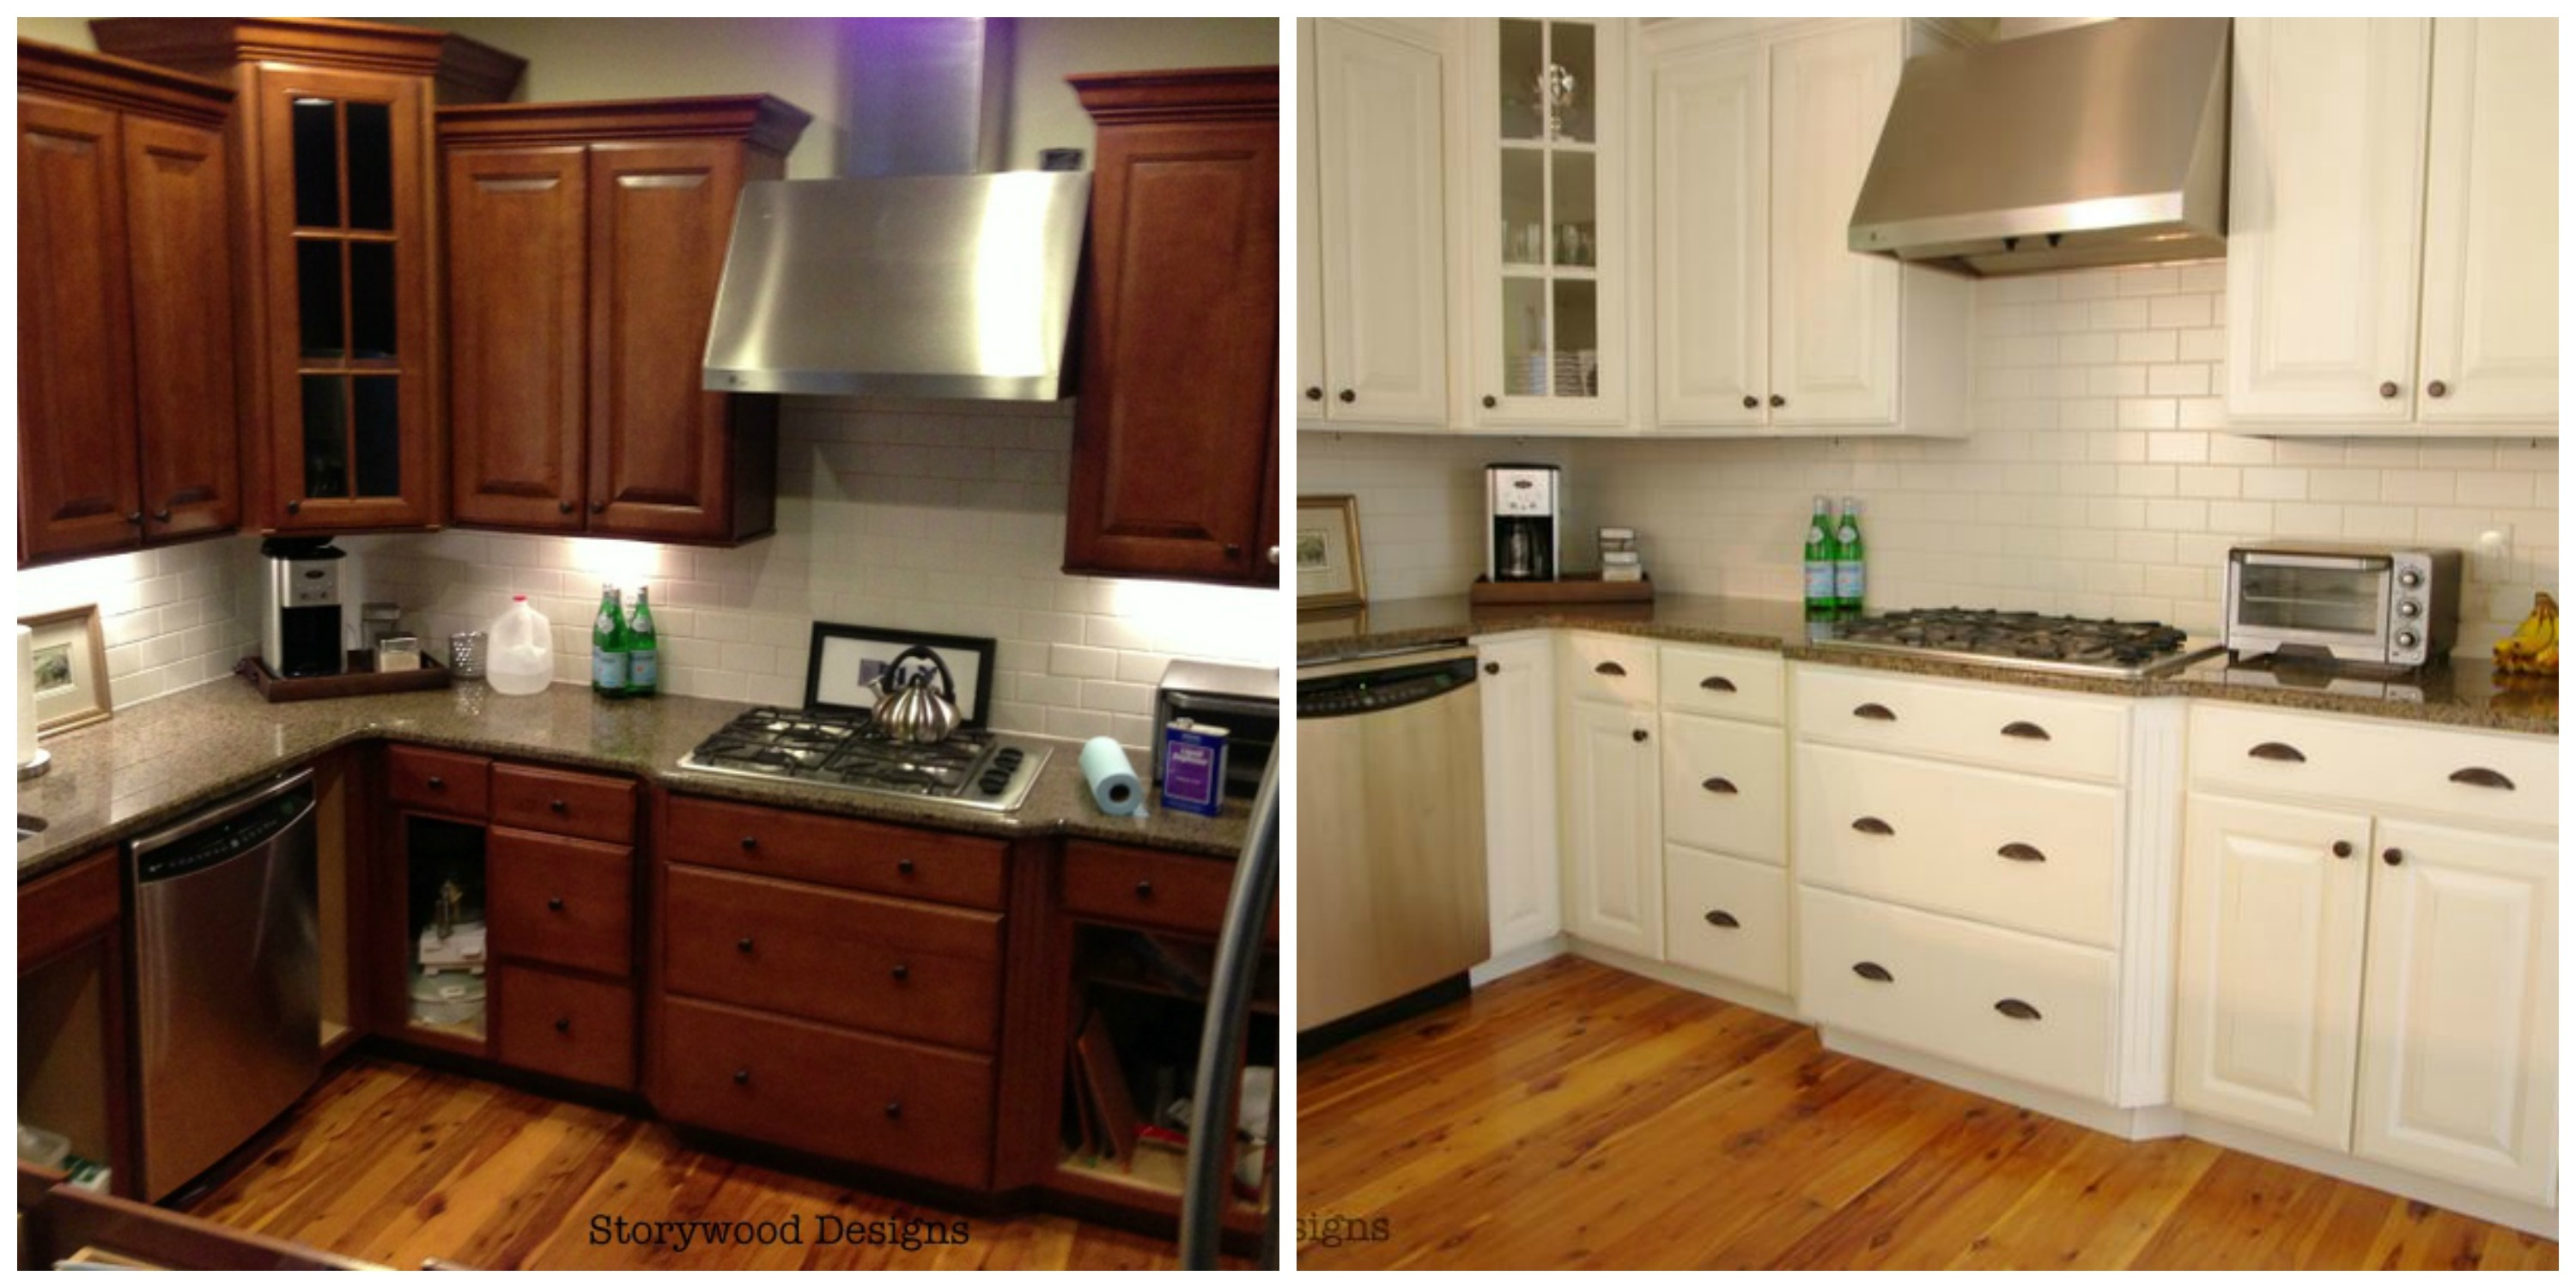 Refurbished Kitchen Cabinets Before And After